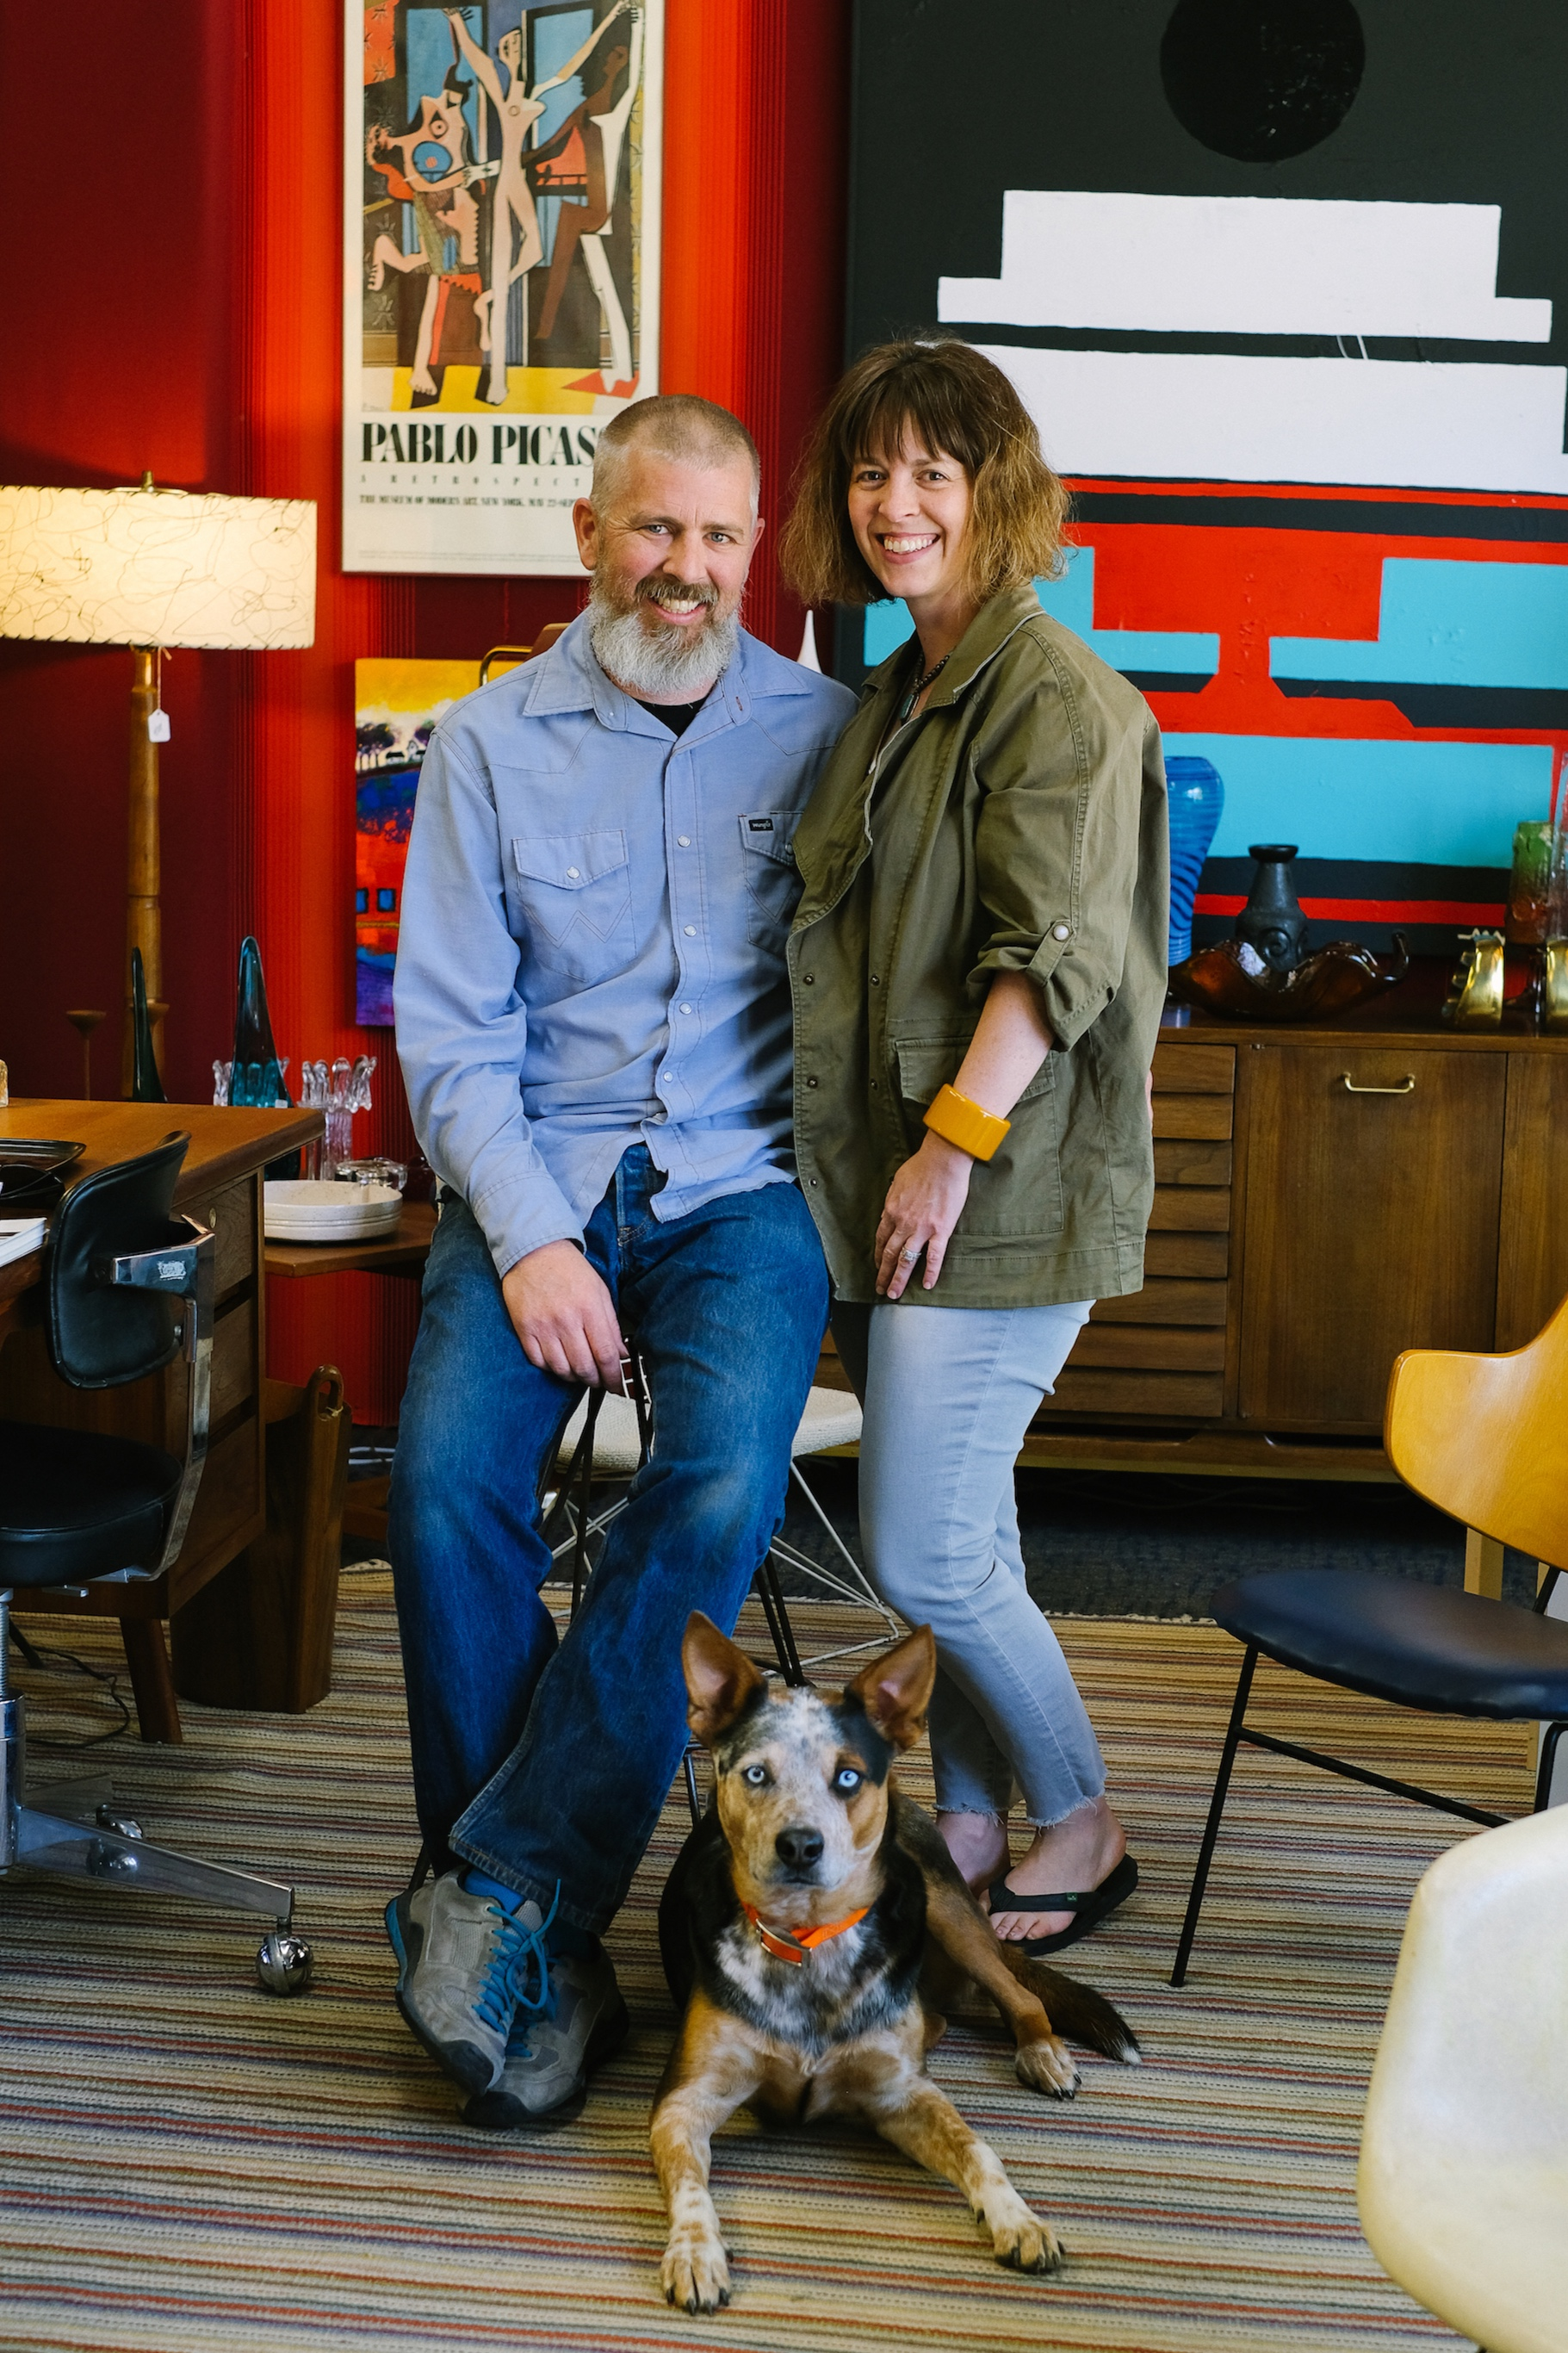 The author and her friend Fred and their dog at High Desert Authentiques, 518 Colorado Avenue, Grand Junction. Contact the store at 970.985.4096 or @highdesertauthentiques.